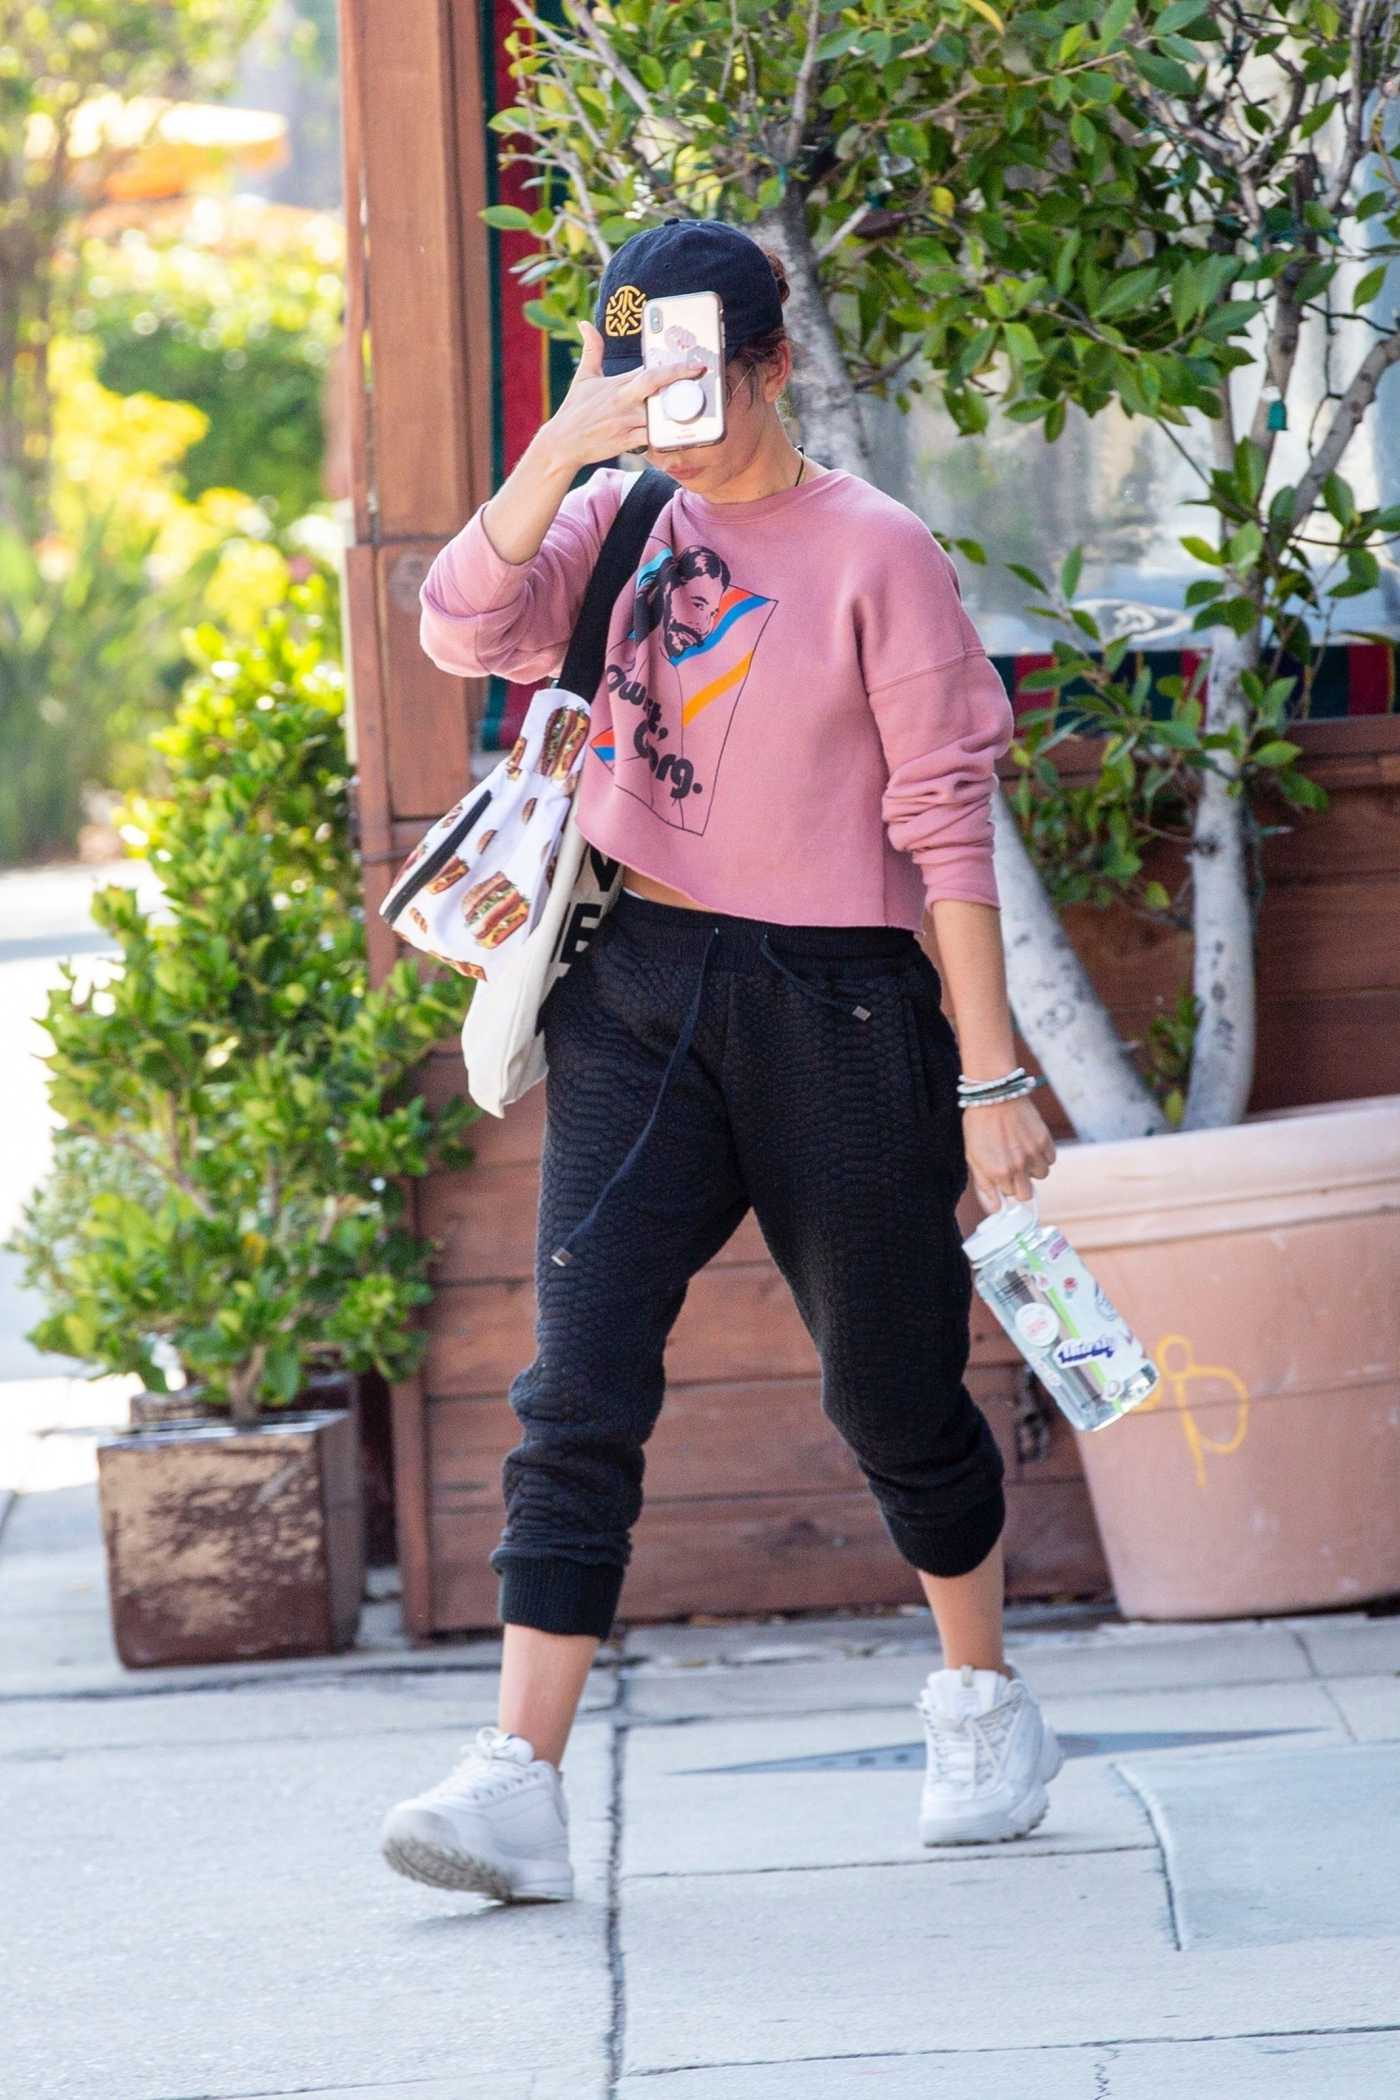 Sarah Hyland in a Pink Sweatshirt Leaves a Gym in LA 06/26/2019